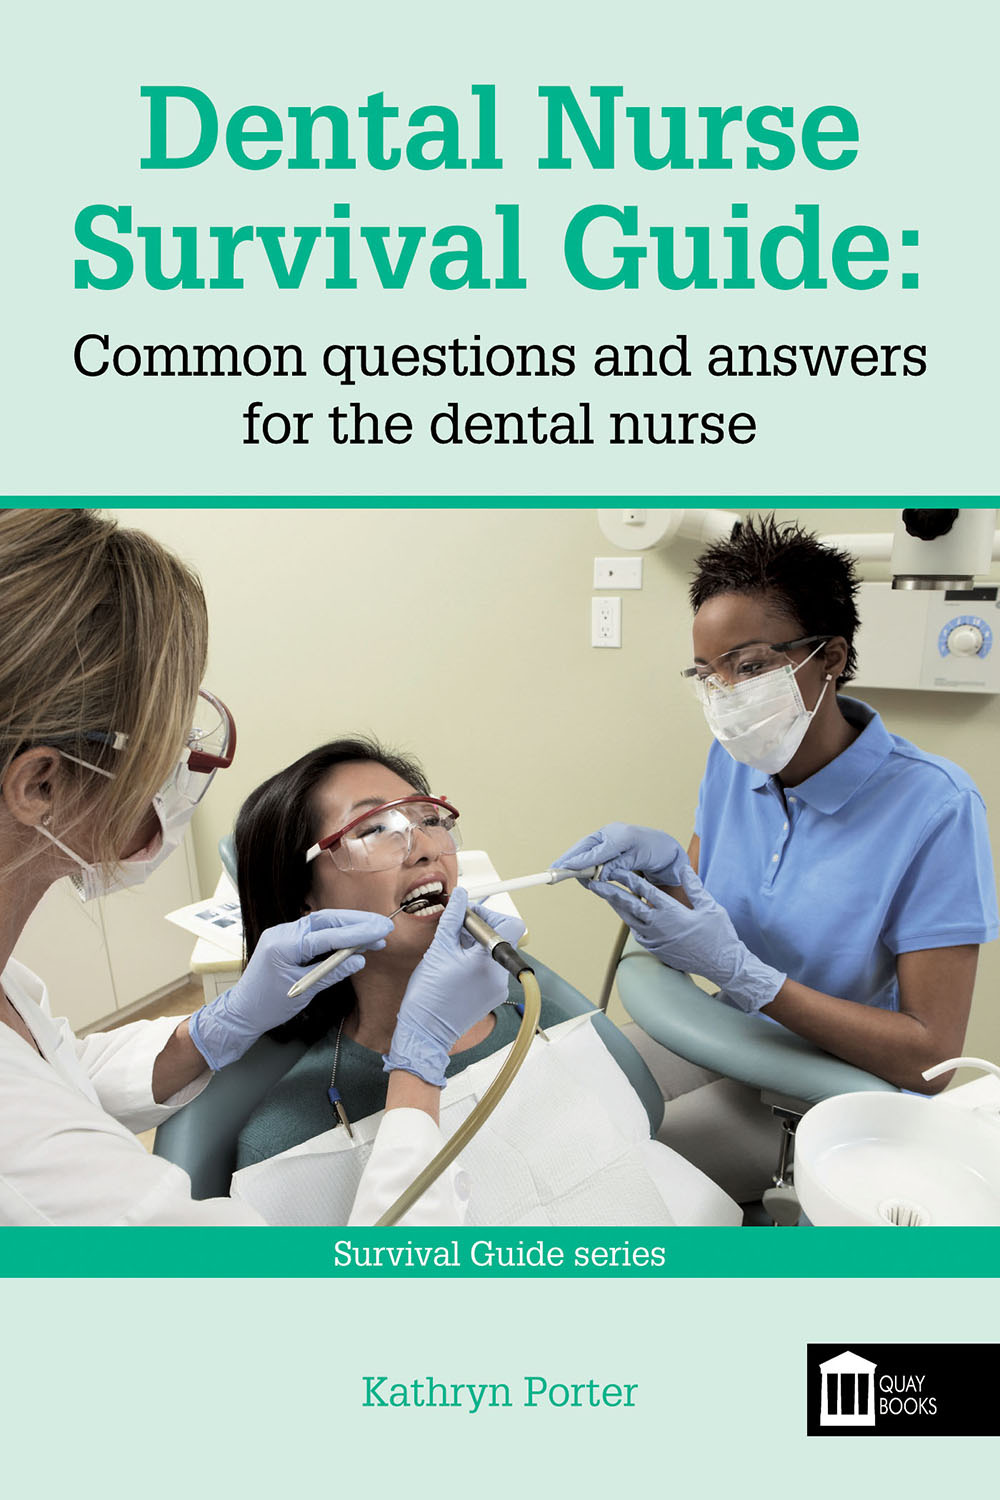 Porter, Kathryn - Dental Nurse Survival Guide, ebook